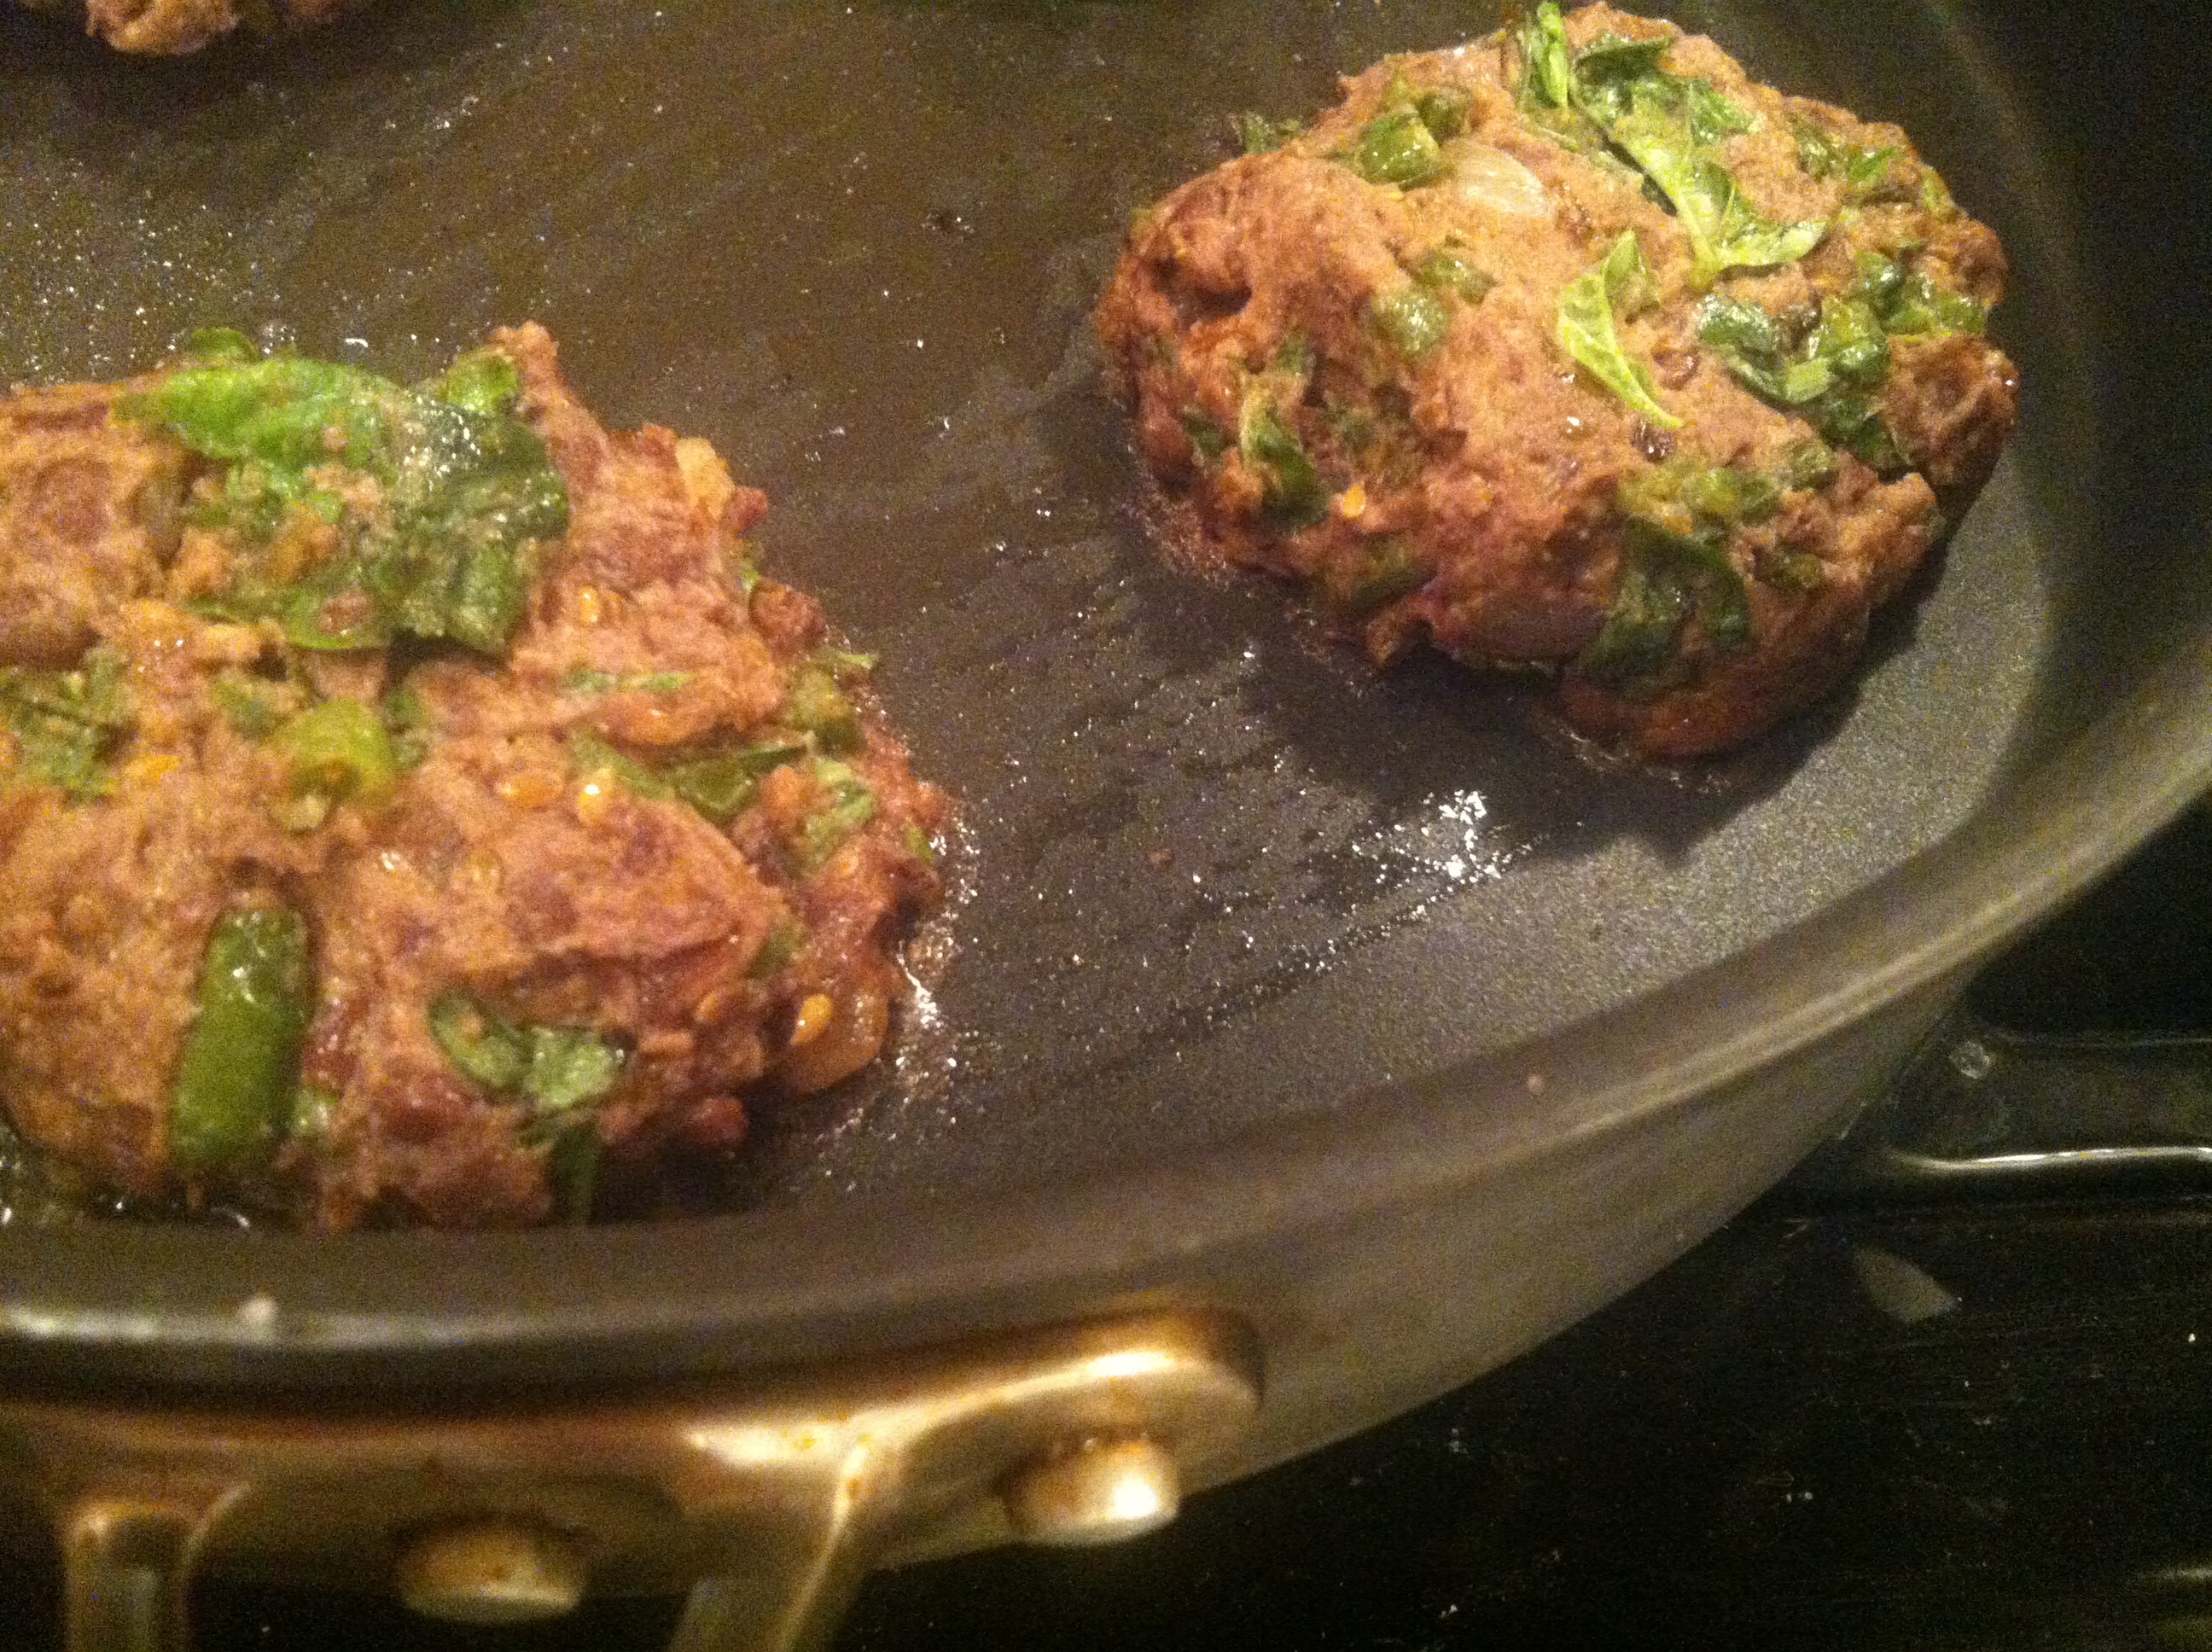 Vegan Three Bean Basil Burgers with Cumin & Garlic Dip